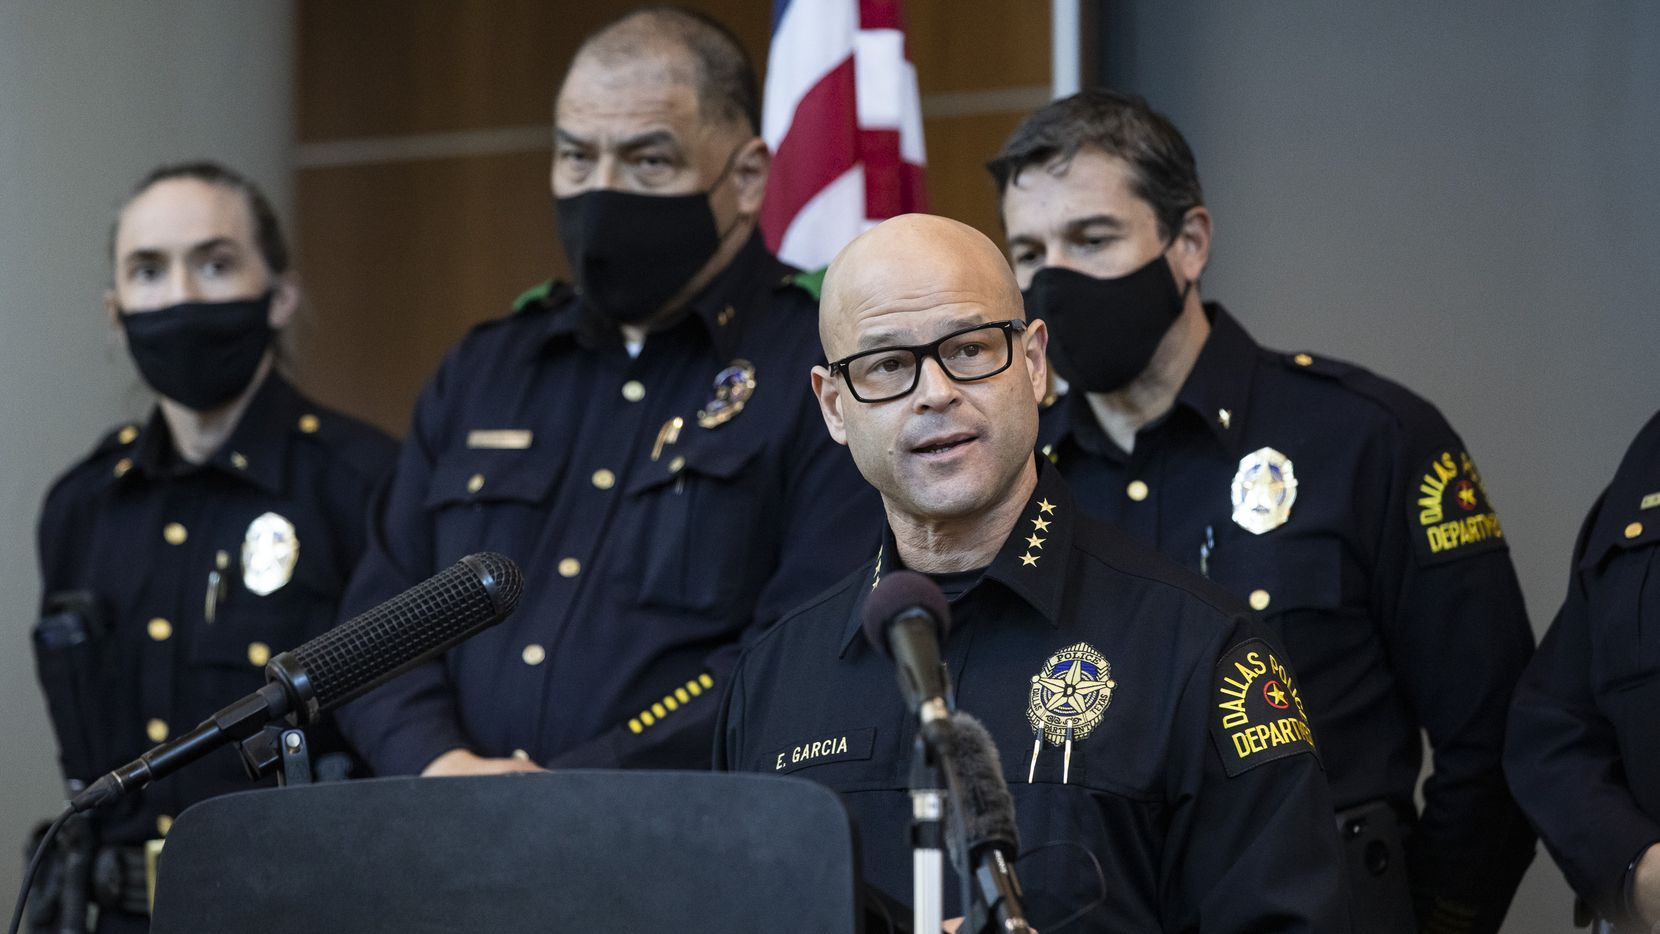 Dallas Police Chief Eddie Garcia announced the arrest of Officer Bryan Riser on charges of capital murder in connection with two 2017 slayings. Garcia said Saturday that he first learned of the department's investigation into Riser on Wednesday.